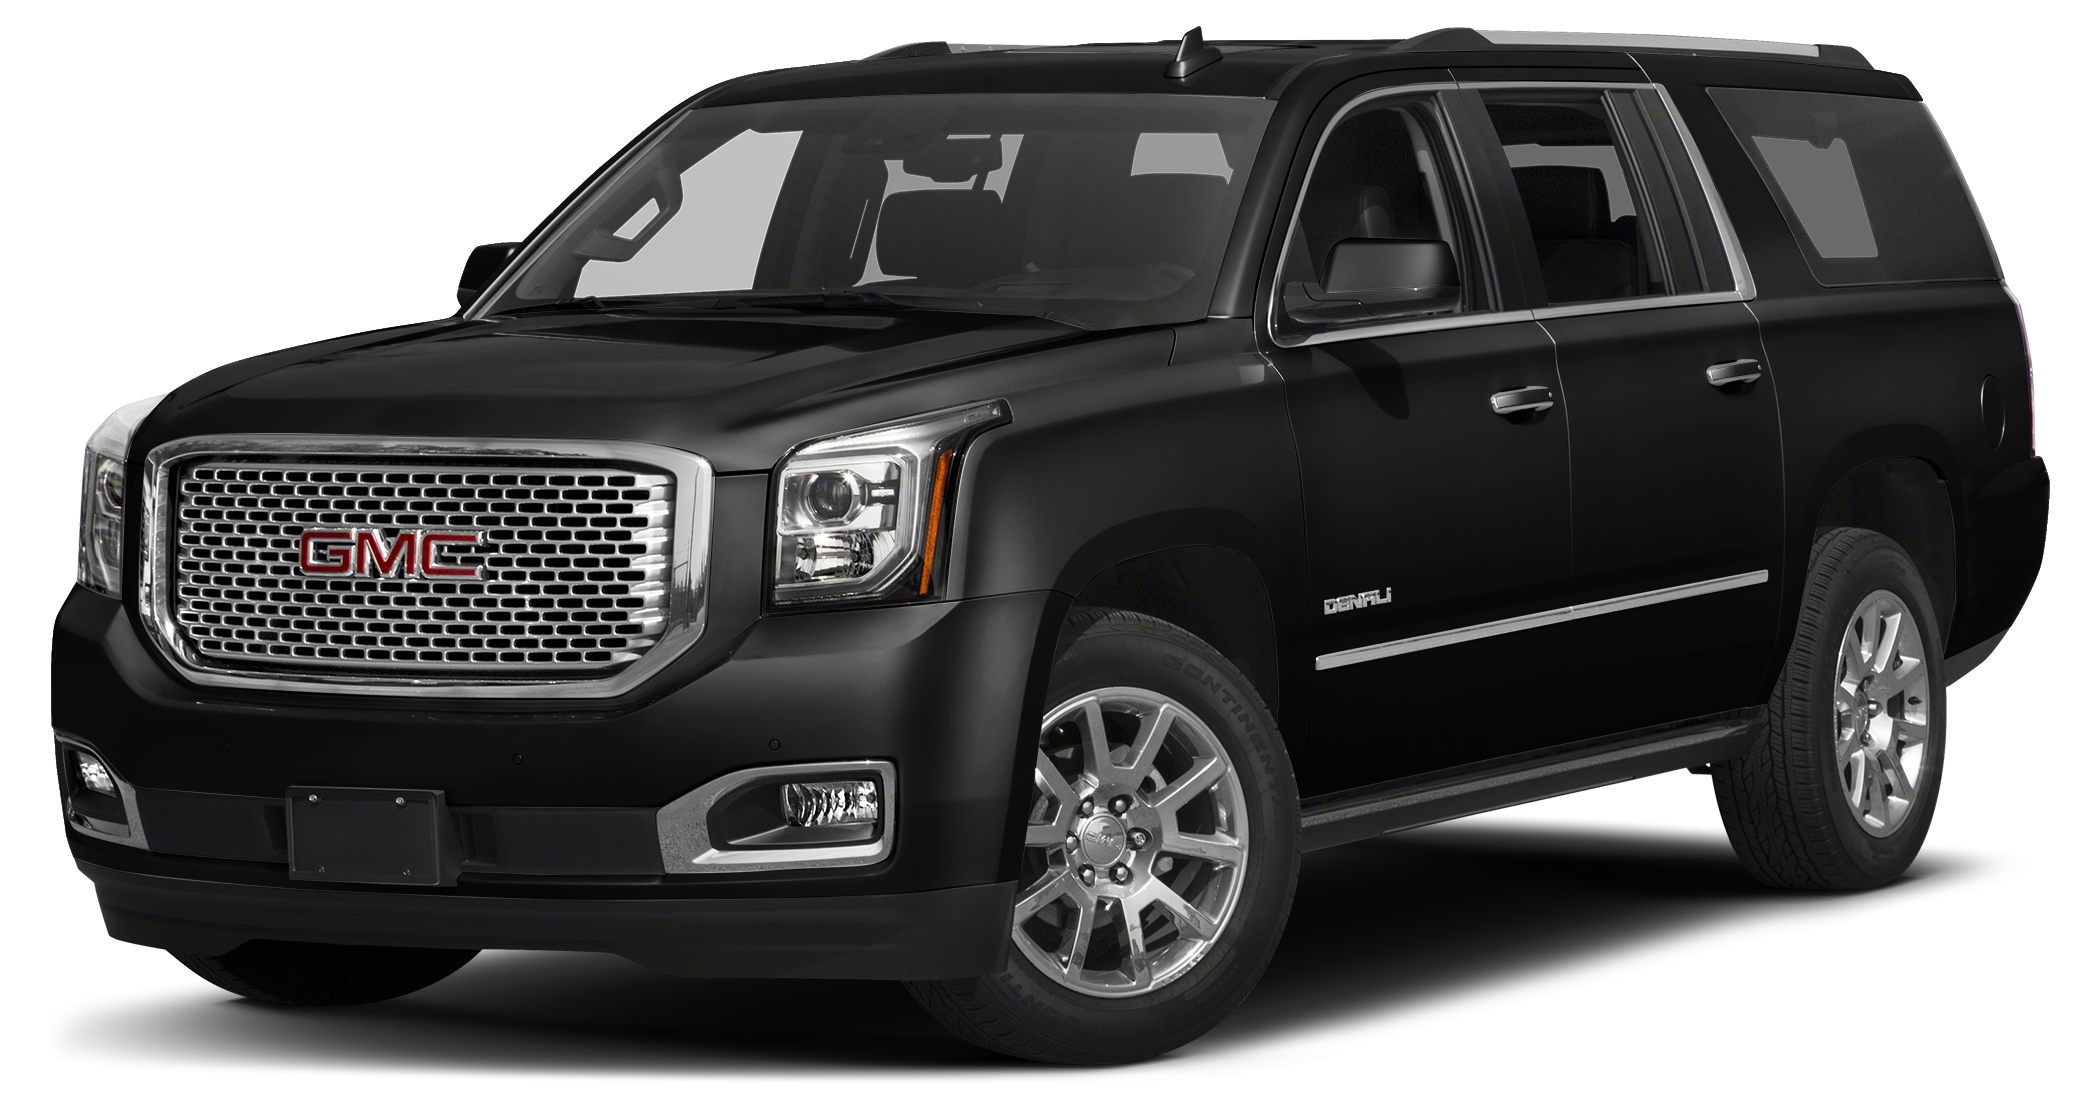 2016 GMC Yukon XL Denali Happiness comes first with this 2016 GMC Yukon XL Denali Enjoy first-rat